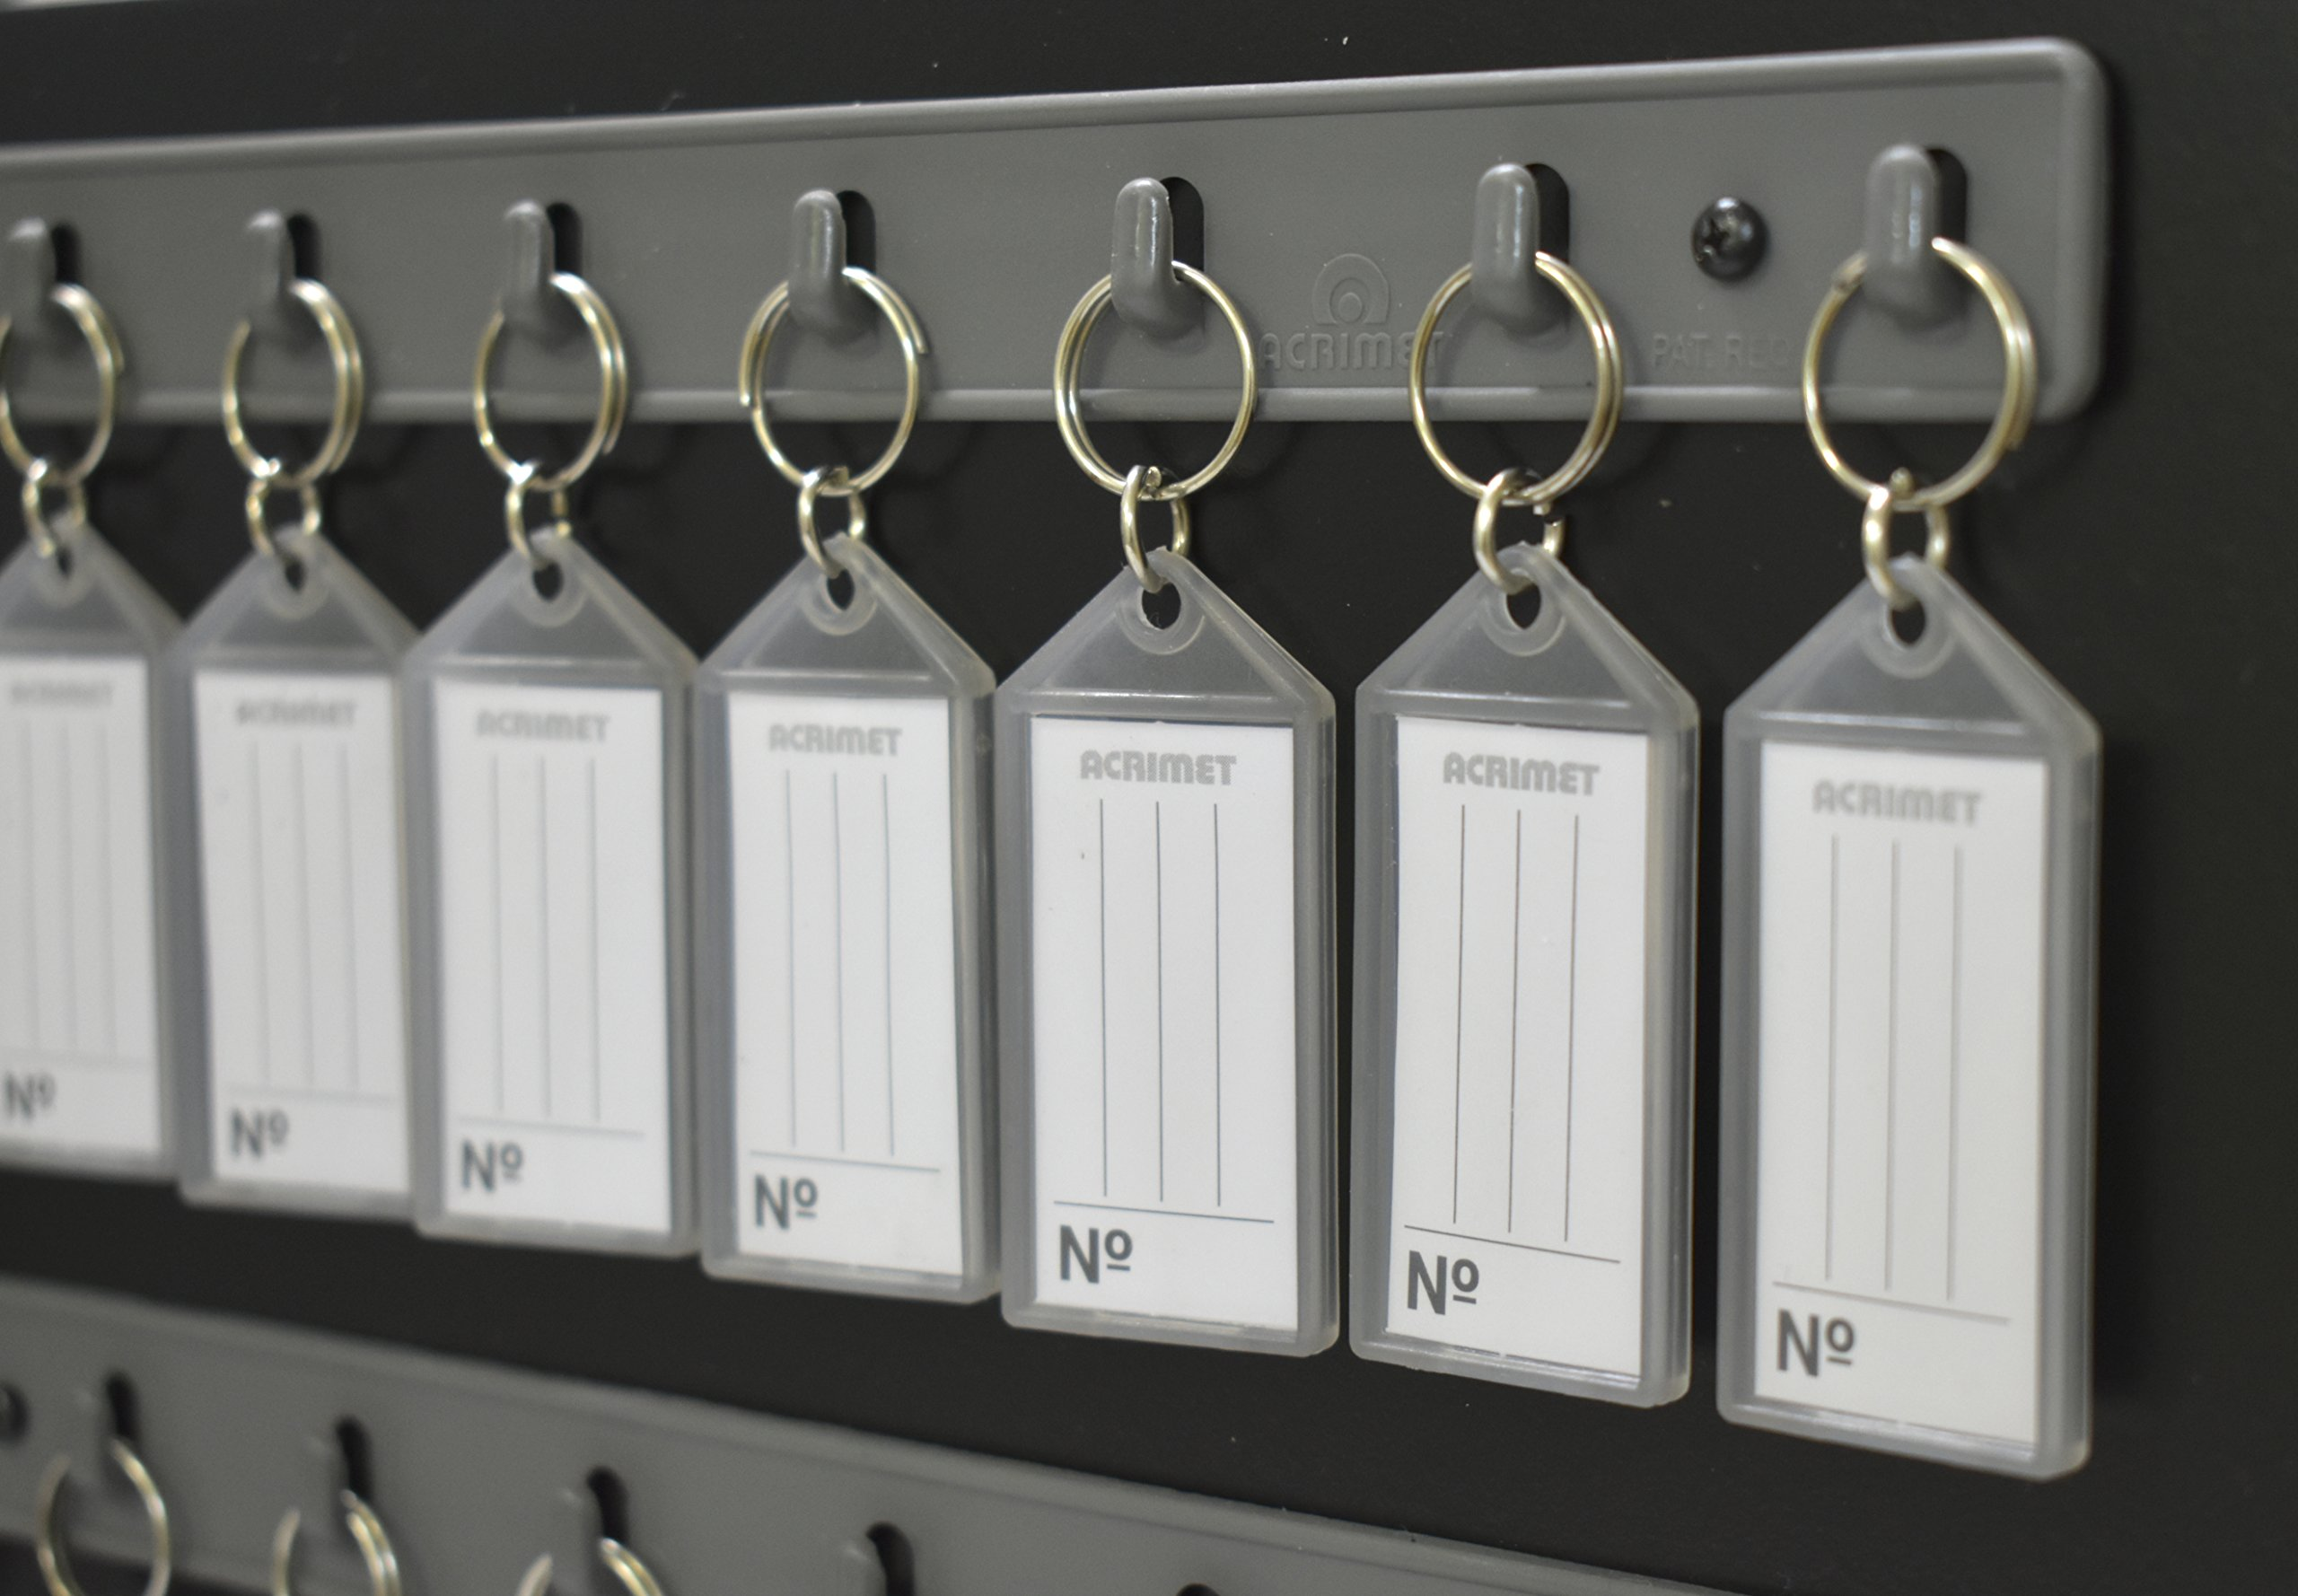 Acrimet Key Cabinet 128 Positions with 128 Key Tags (Black Color) by Acrimet (Image #4)